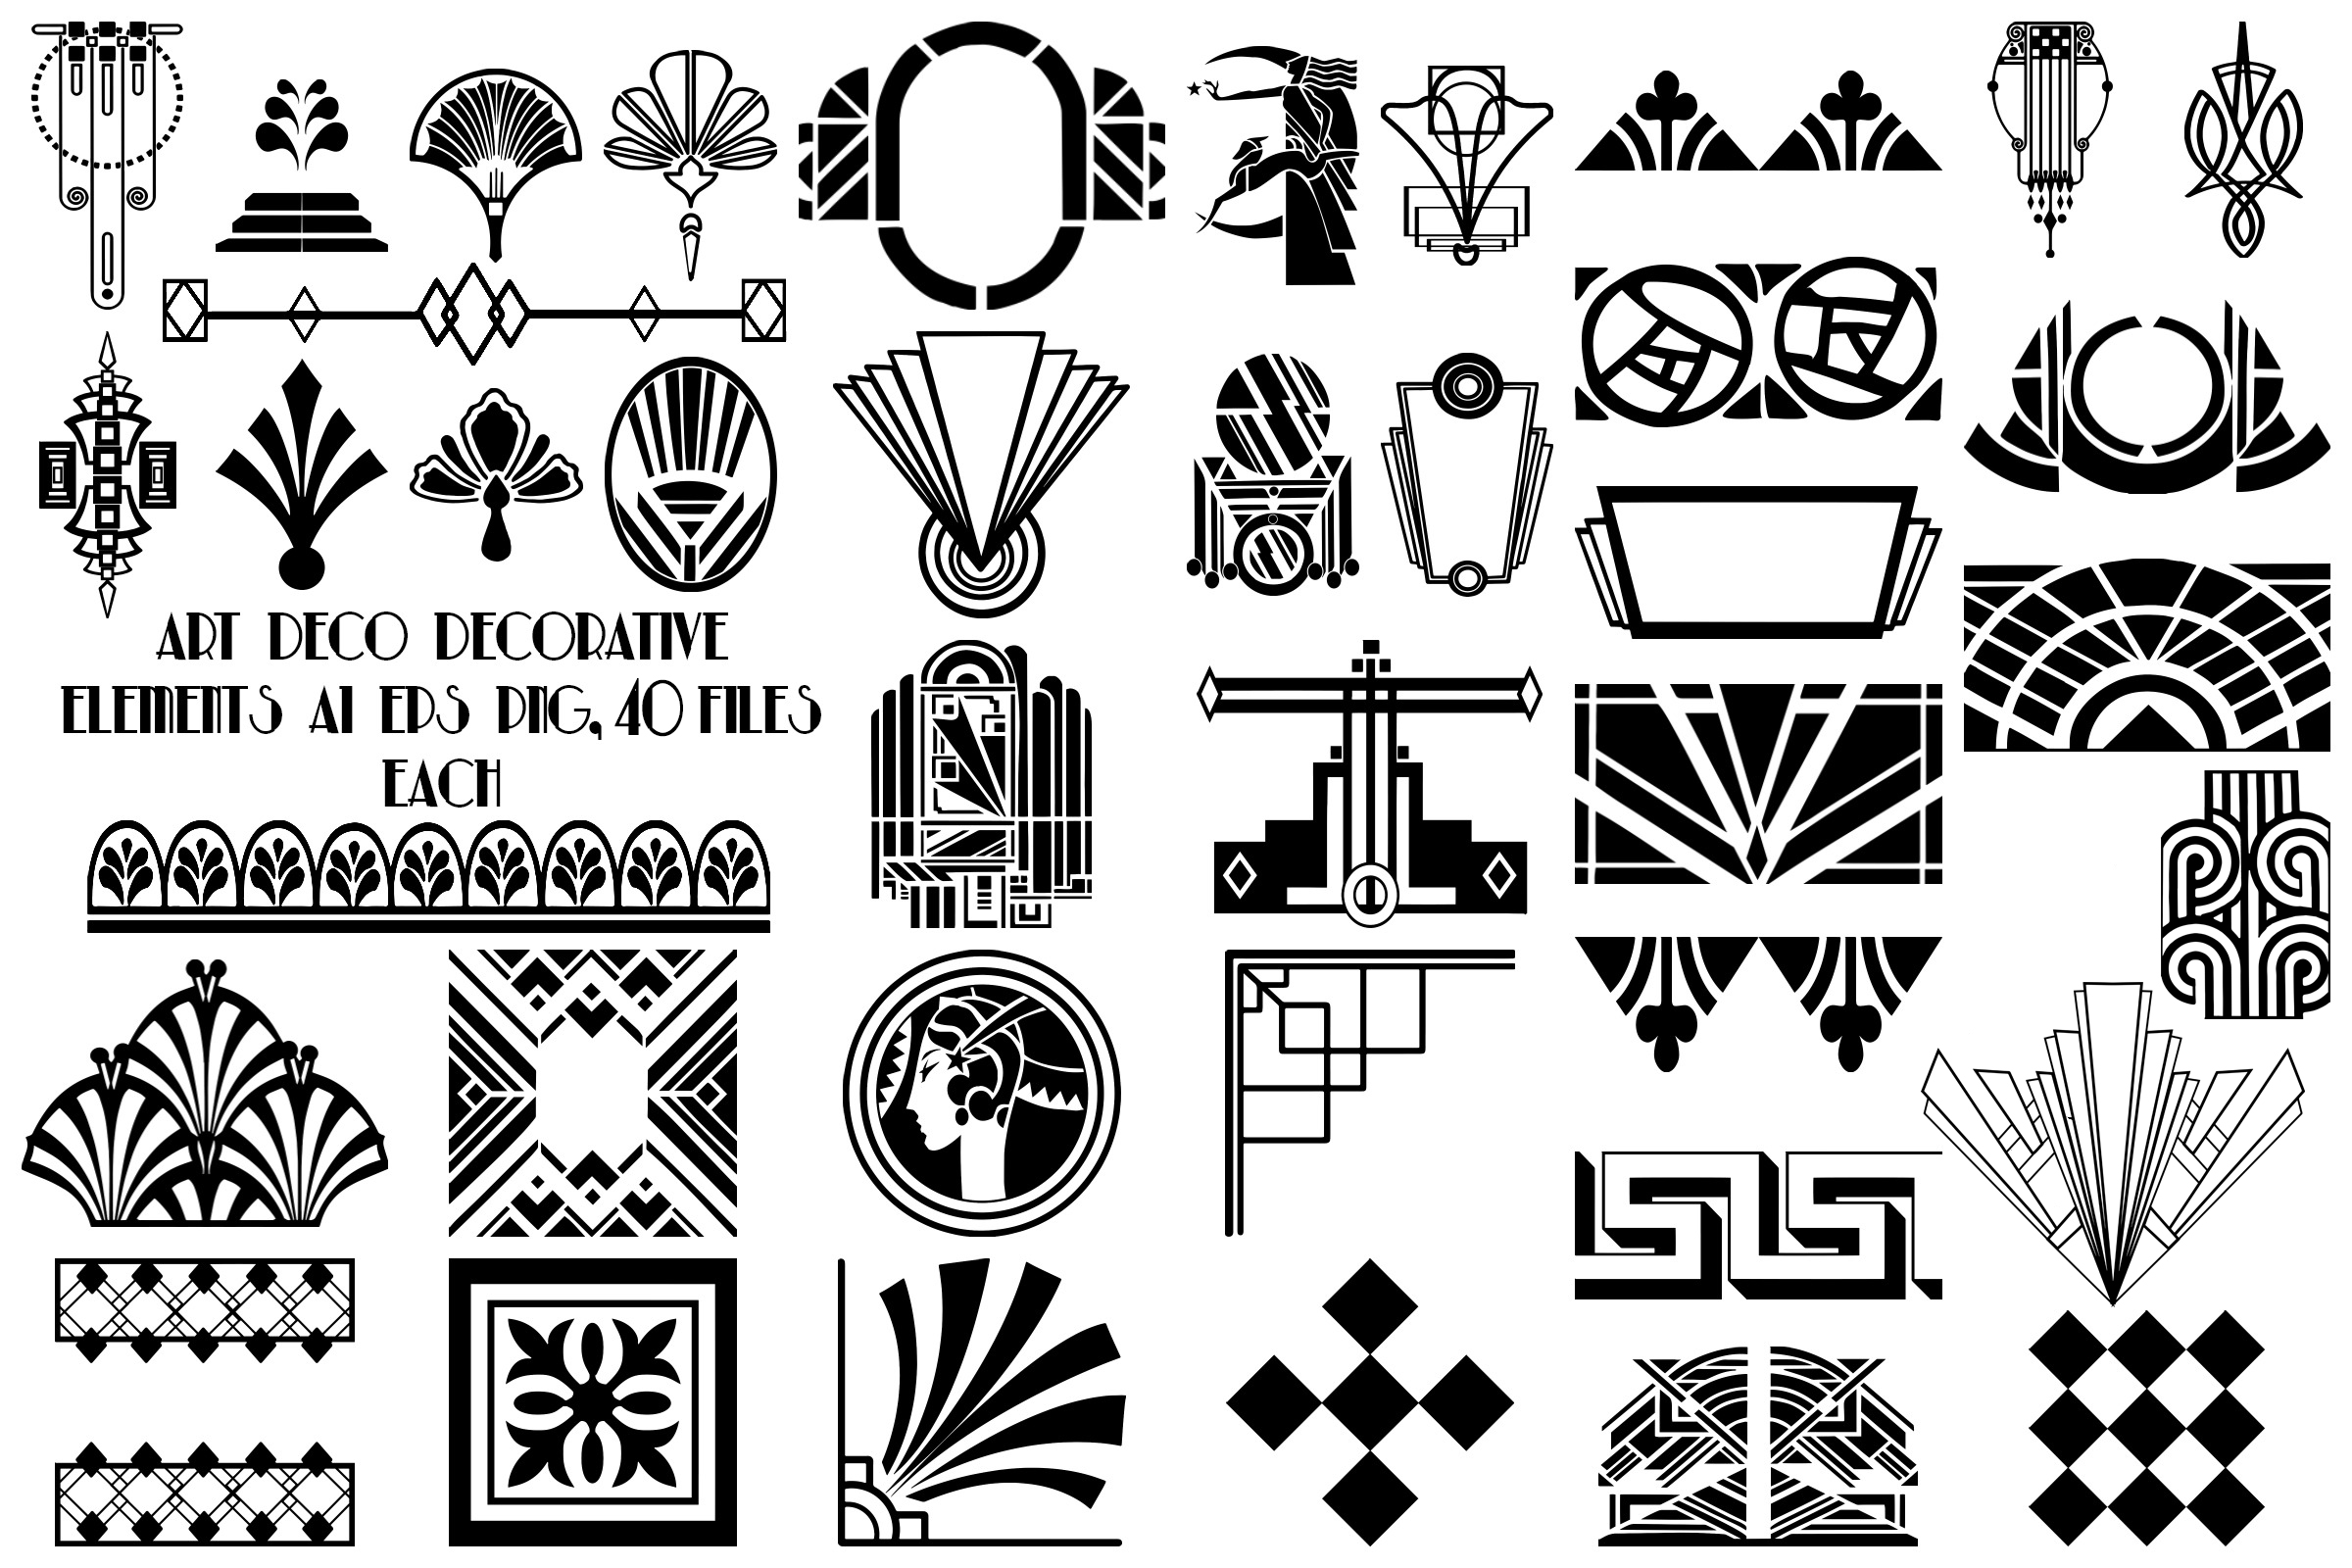 Art deco decorative elements ai eps png gatsby style - Art deco design elements ...